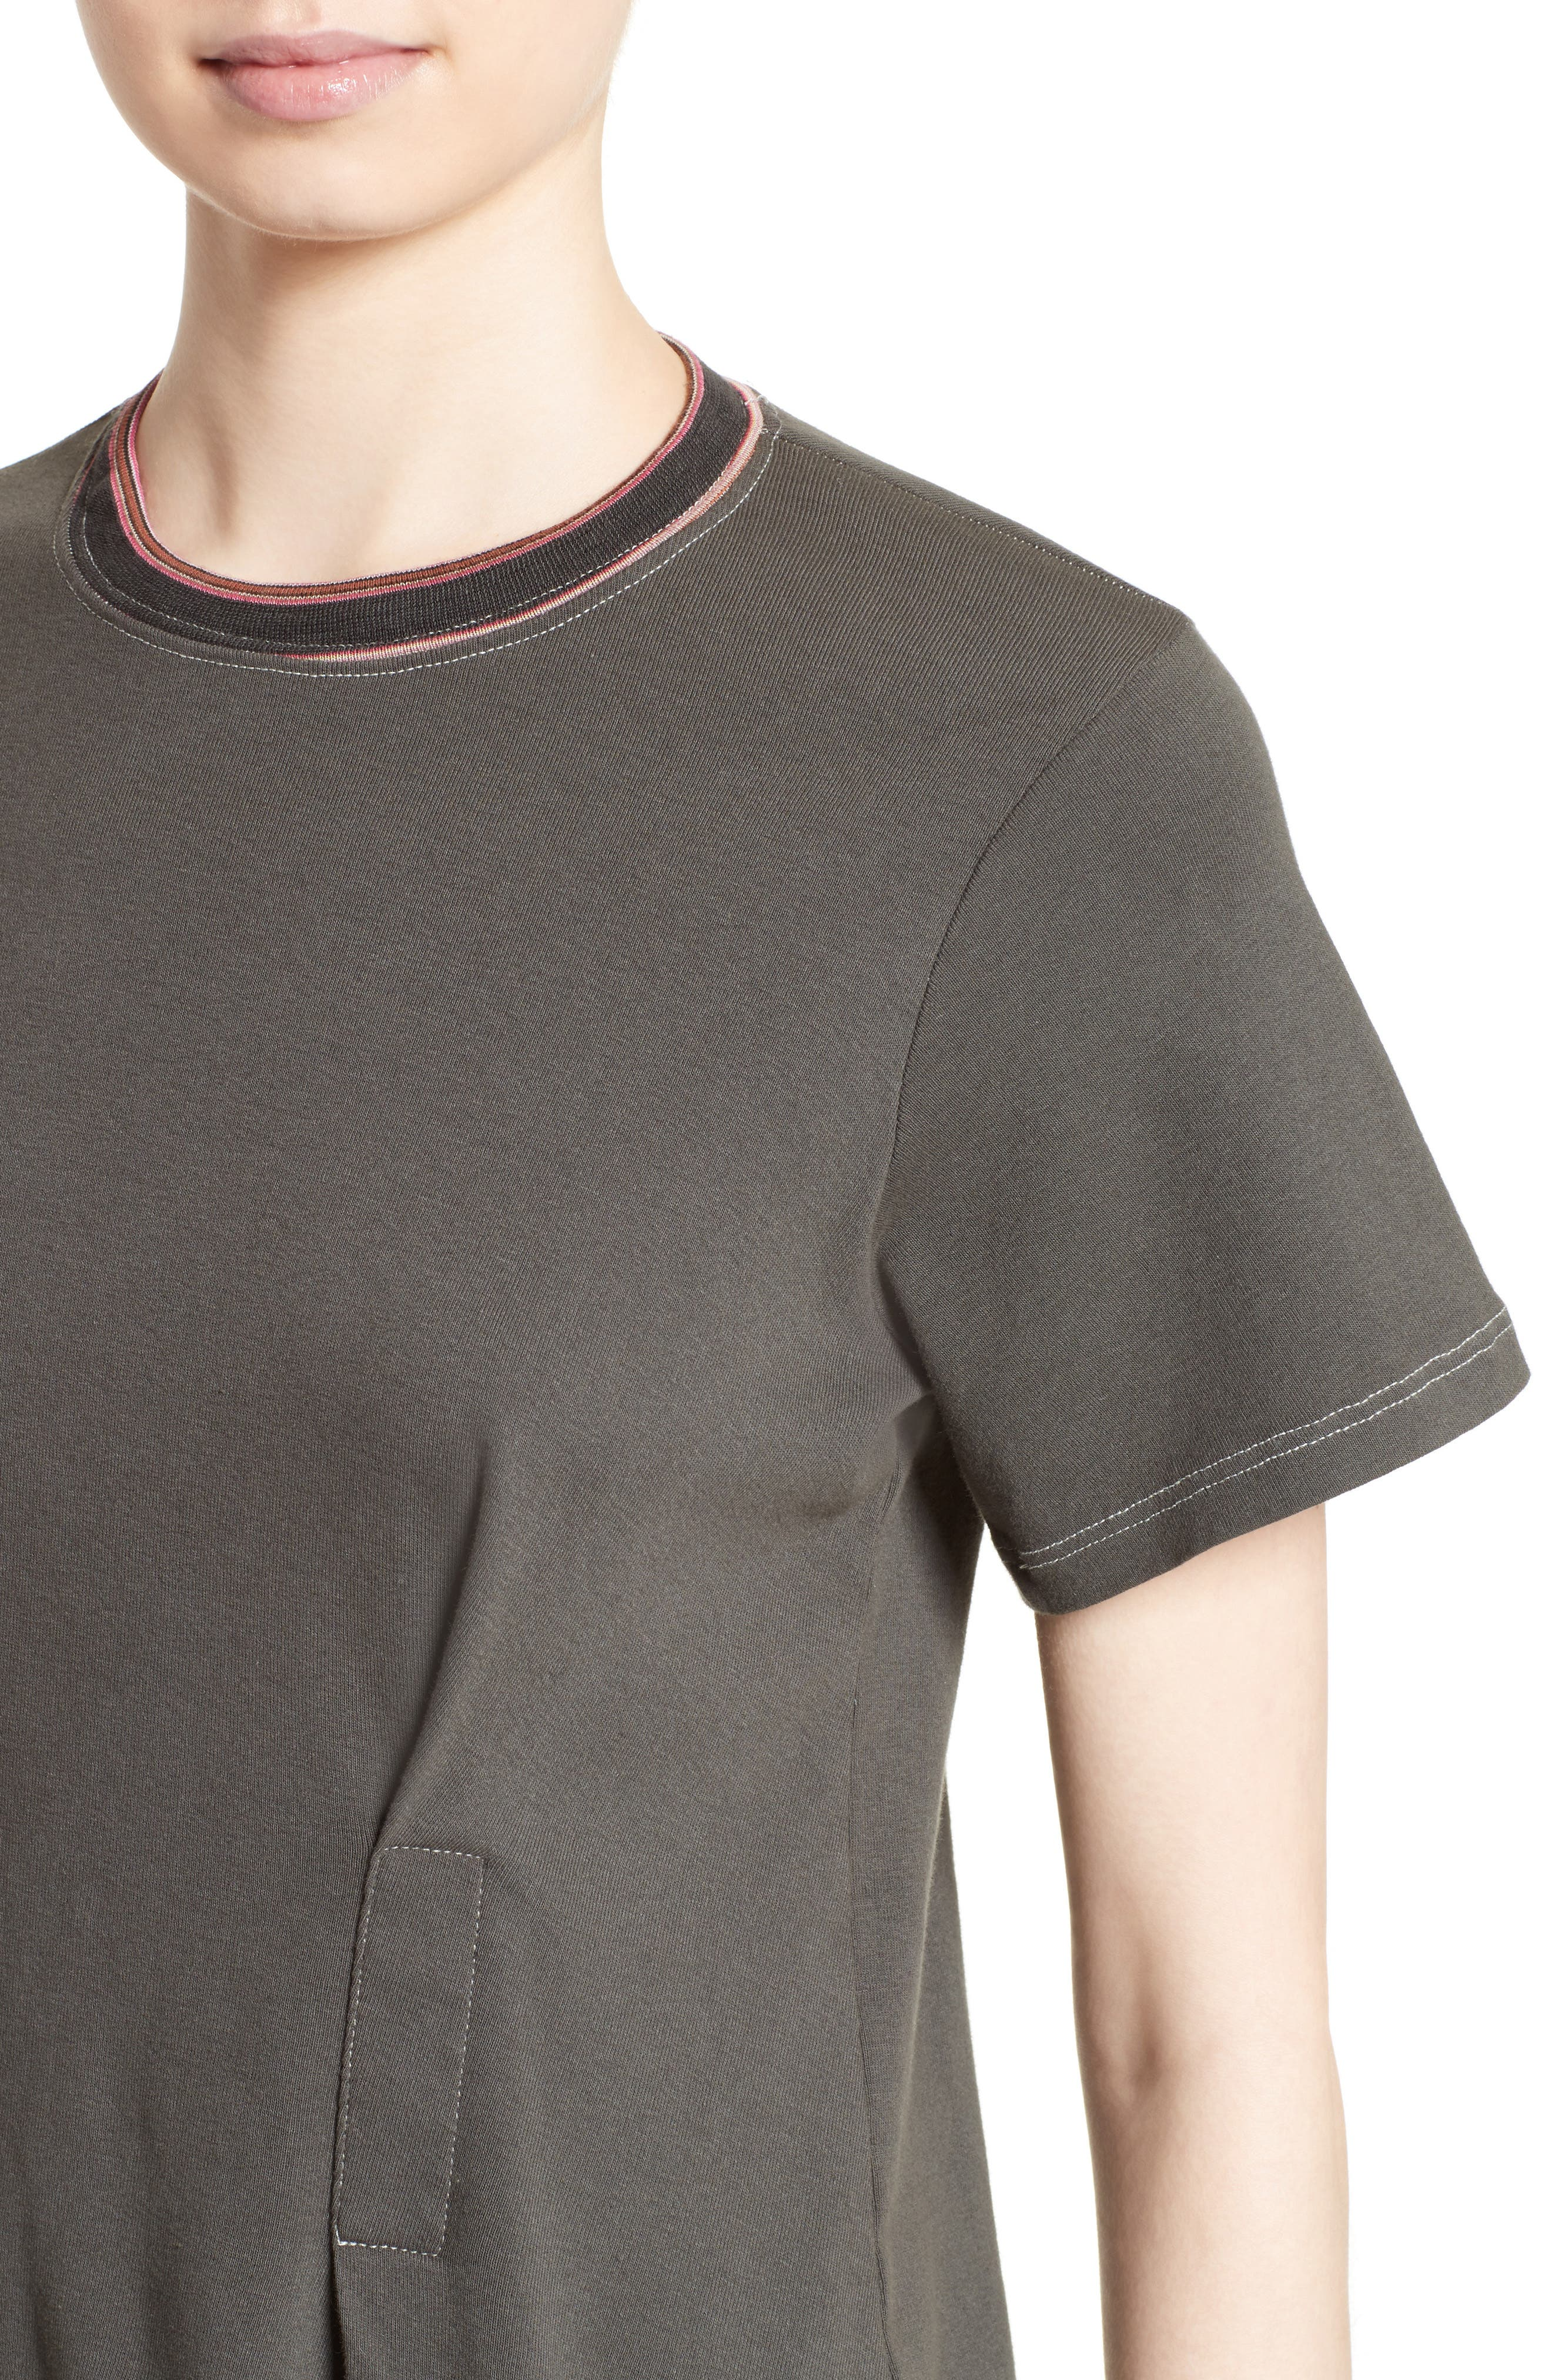 Top Stitch Tee,                             Alternate thumbnail 4, color,                             020